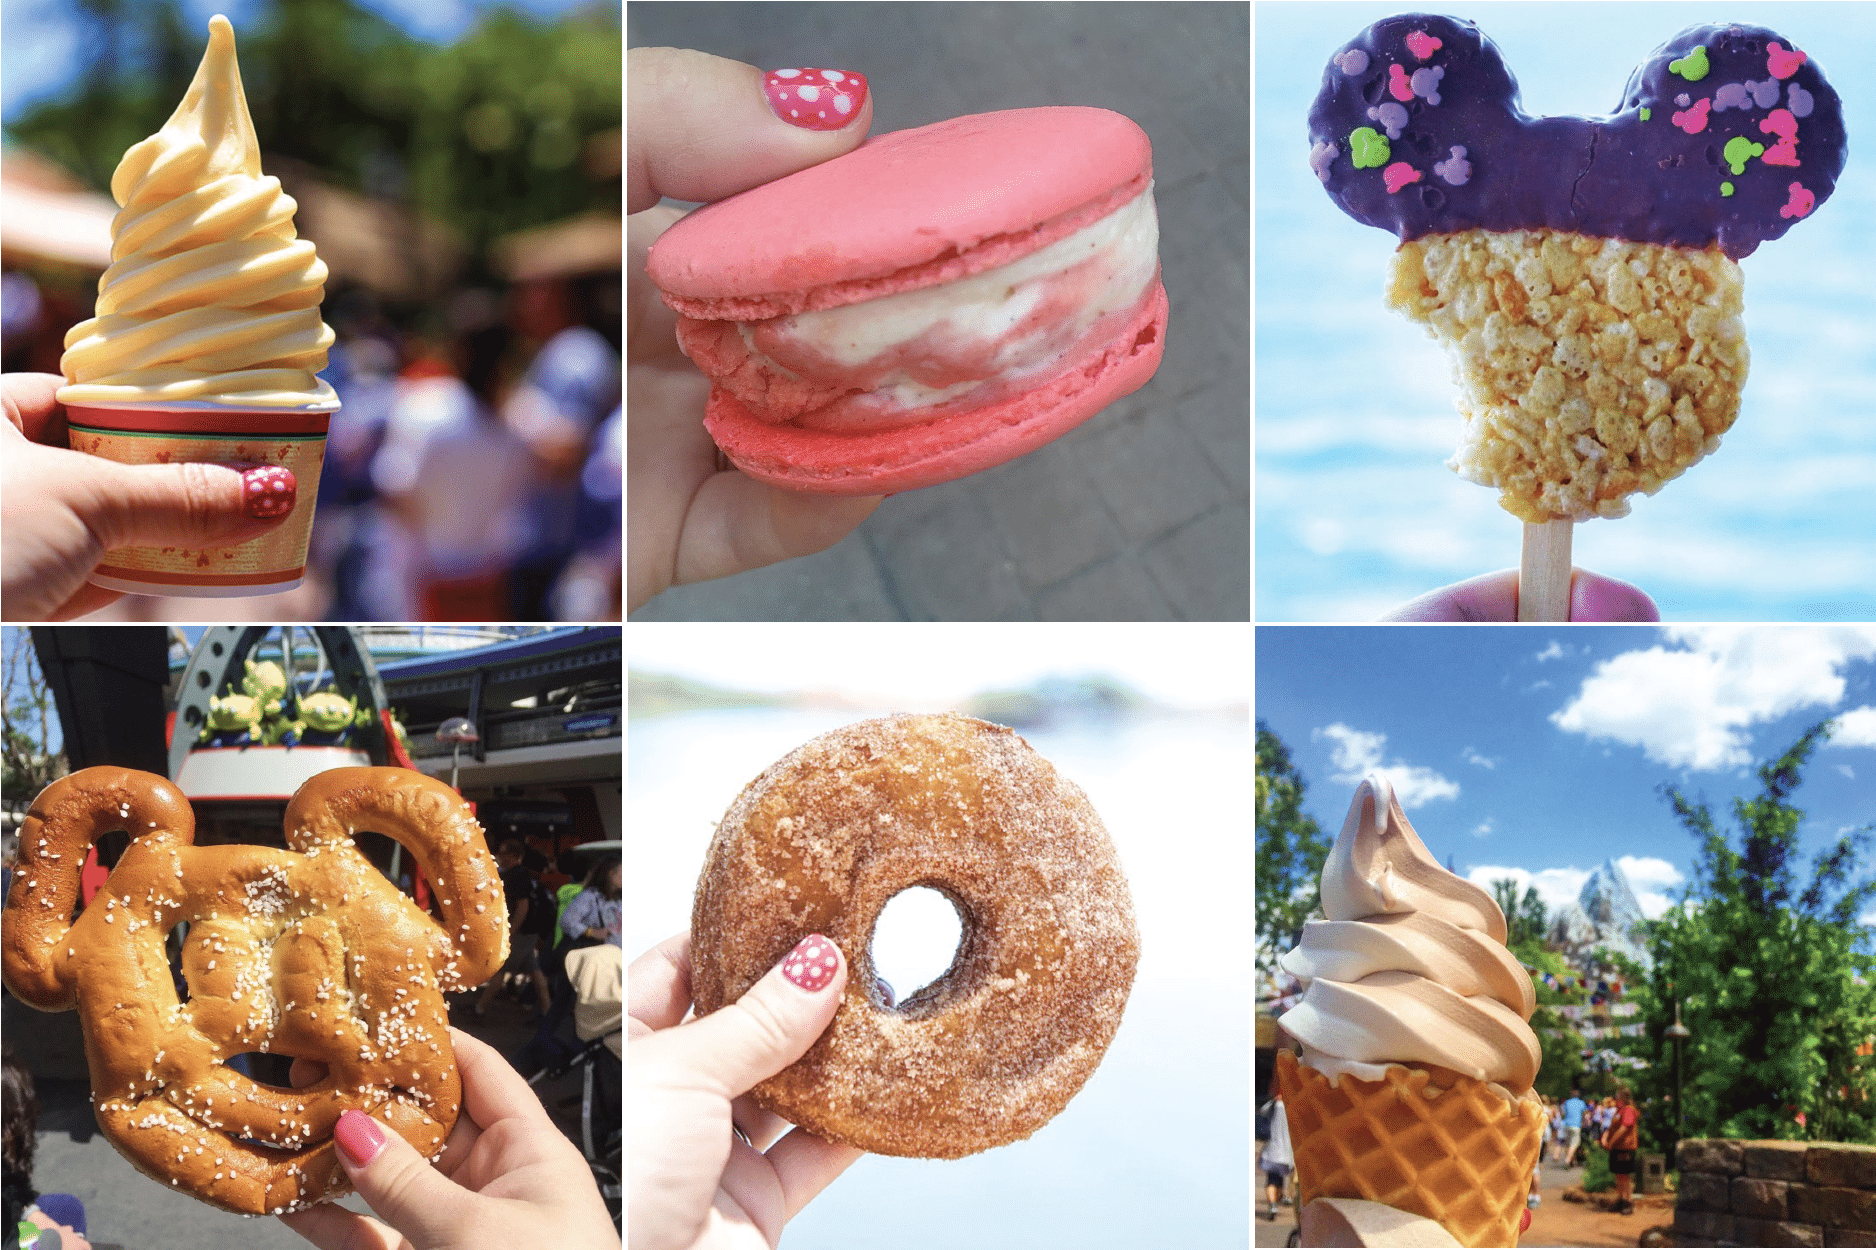 Pictures of Disney snacks at Walt Disney World